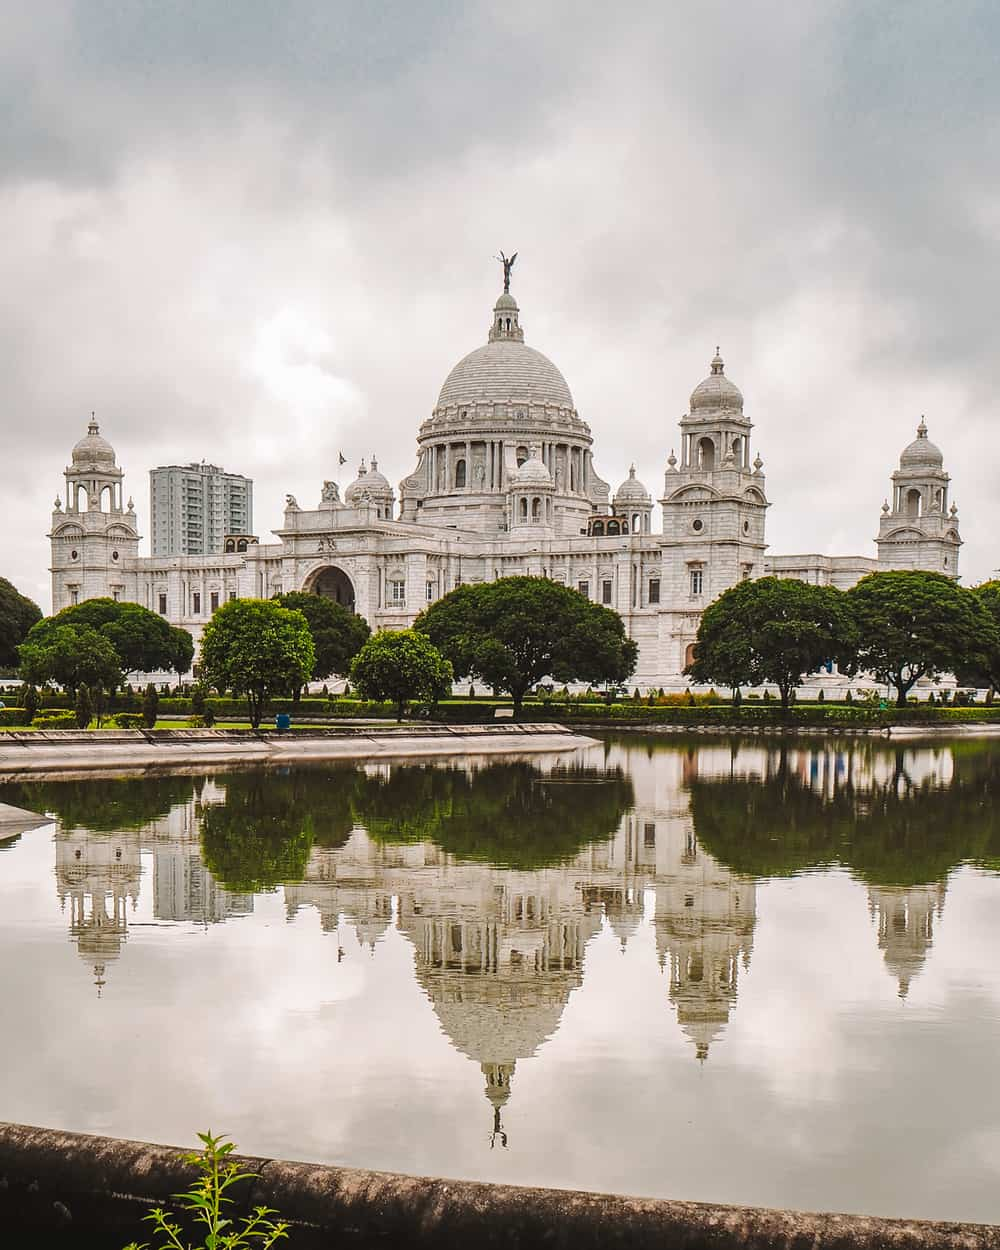 A perfect reflections of The Victoria Memorial